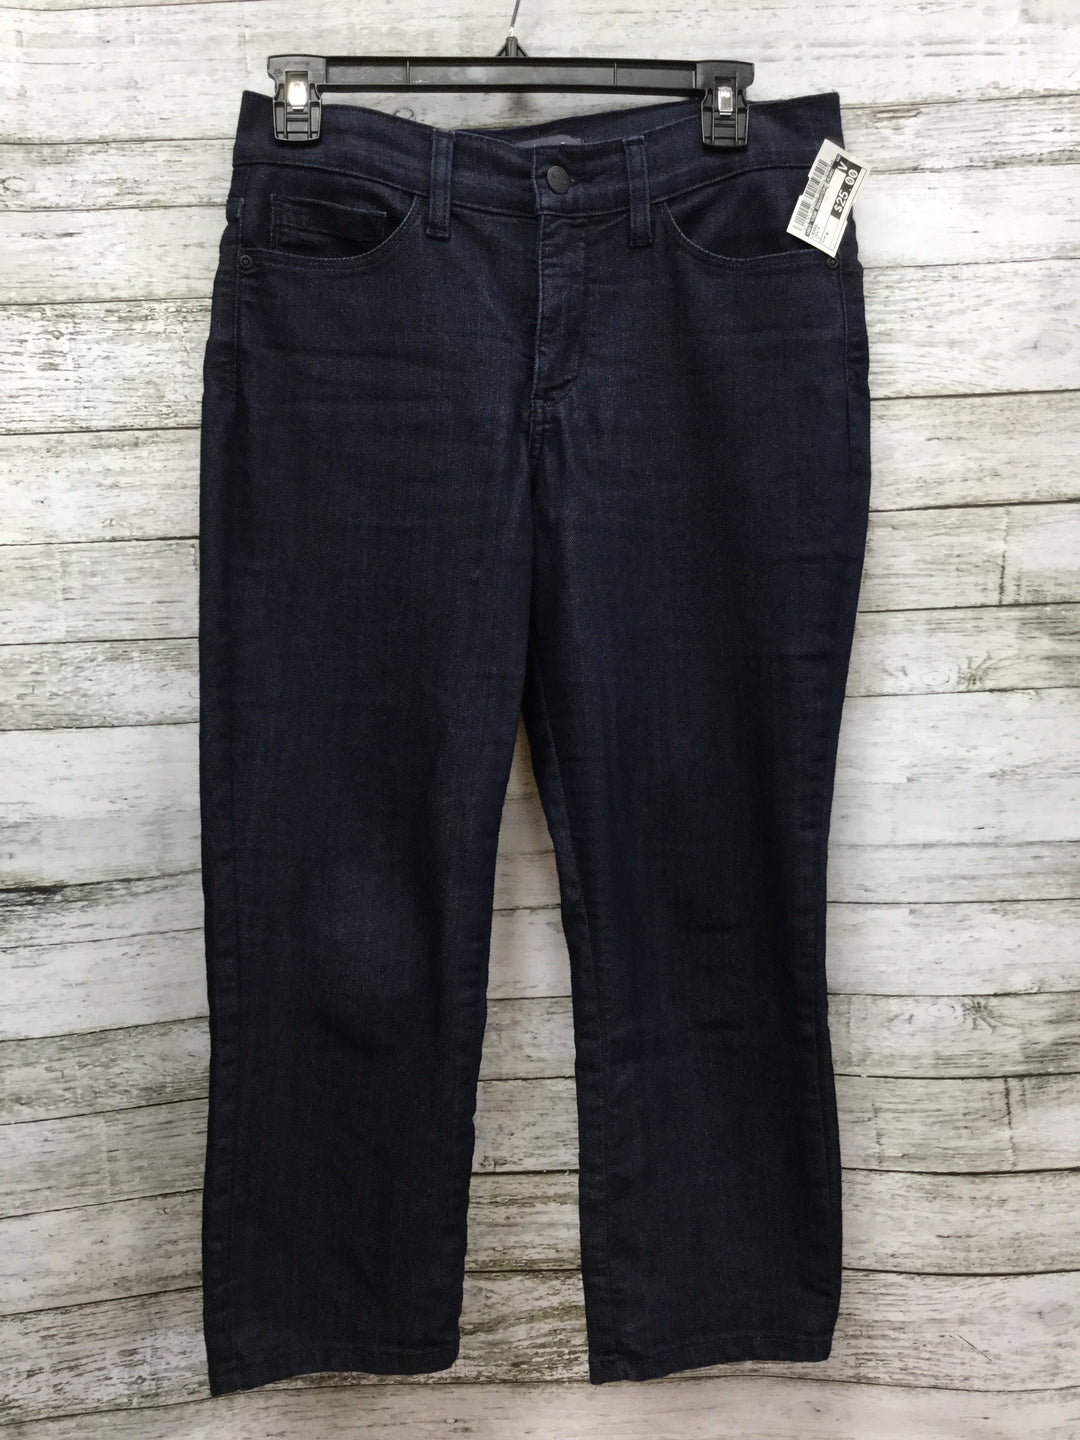 Primary Photo - BRAND: NOT YOUR DAUGHTERS JEANS , STYLE: JEANS , COLOR: DENIM , SIZE: 4 PETITE, SKU: 127-2767-86450, , SIZE 4 PETITE IN GREAT CONDITION.